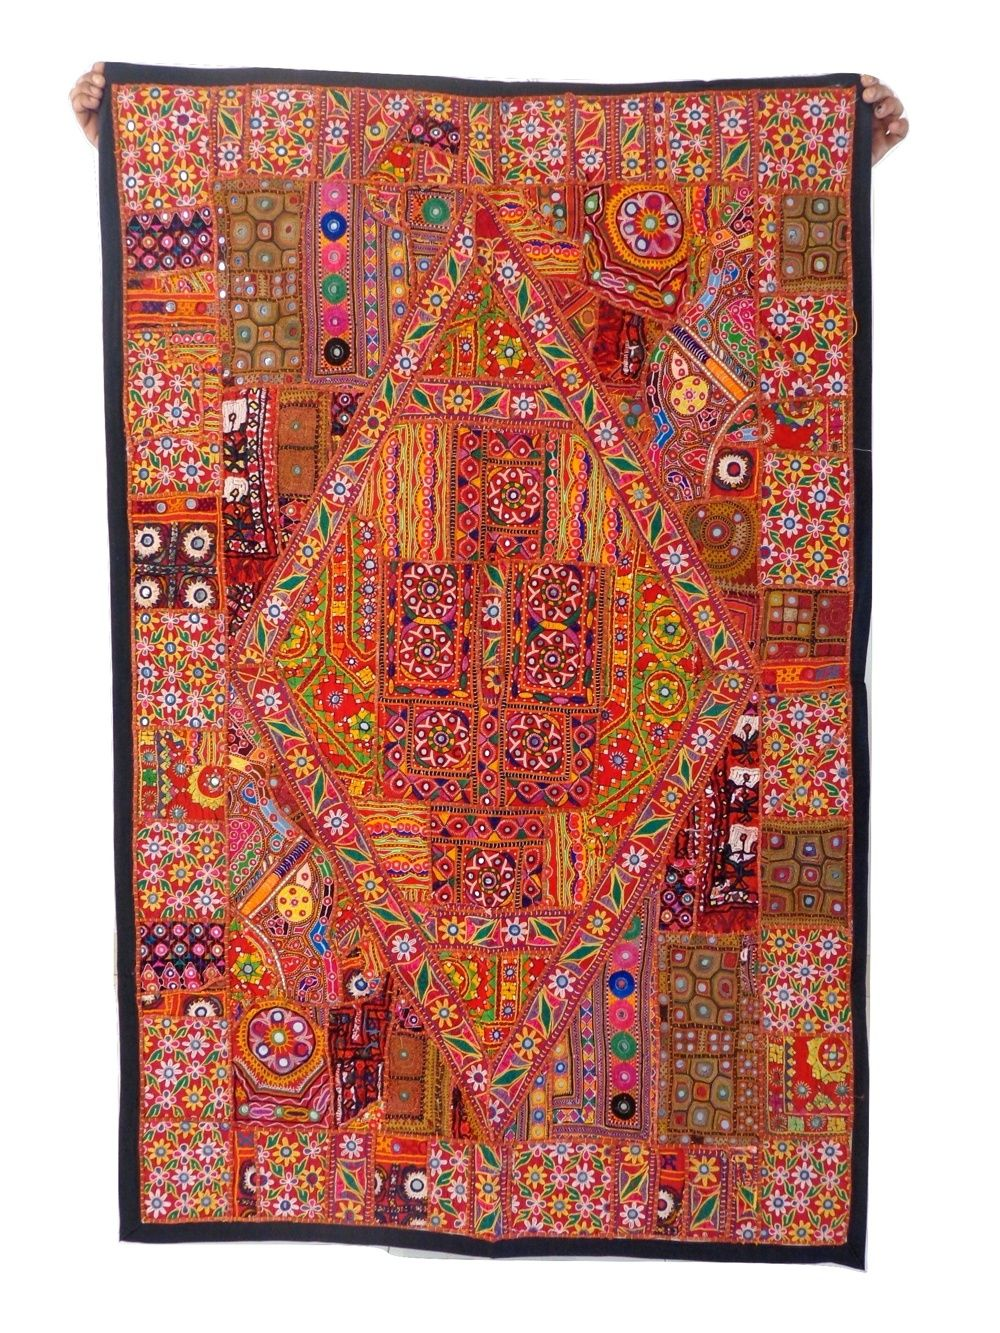 Pin On Home Decor Tapestry Wall Hanging Embroidered Beaded Patchwork